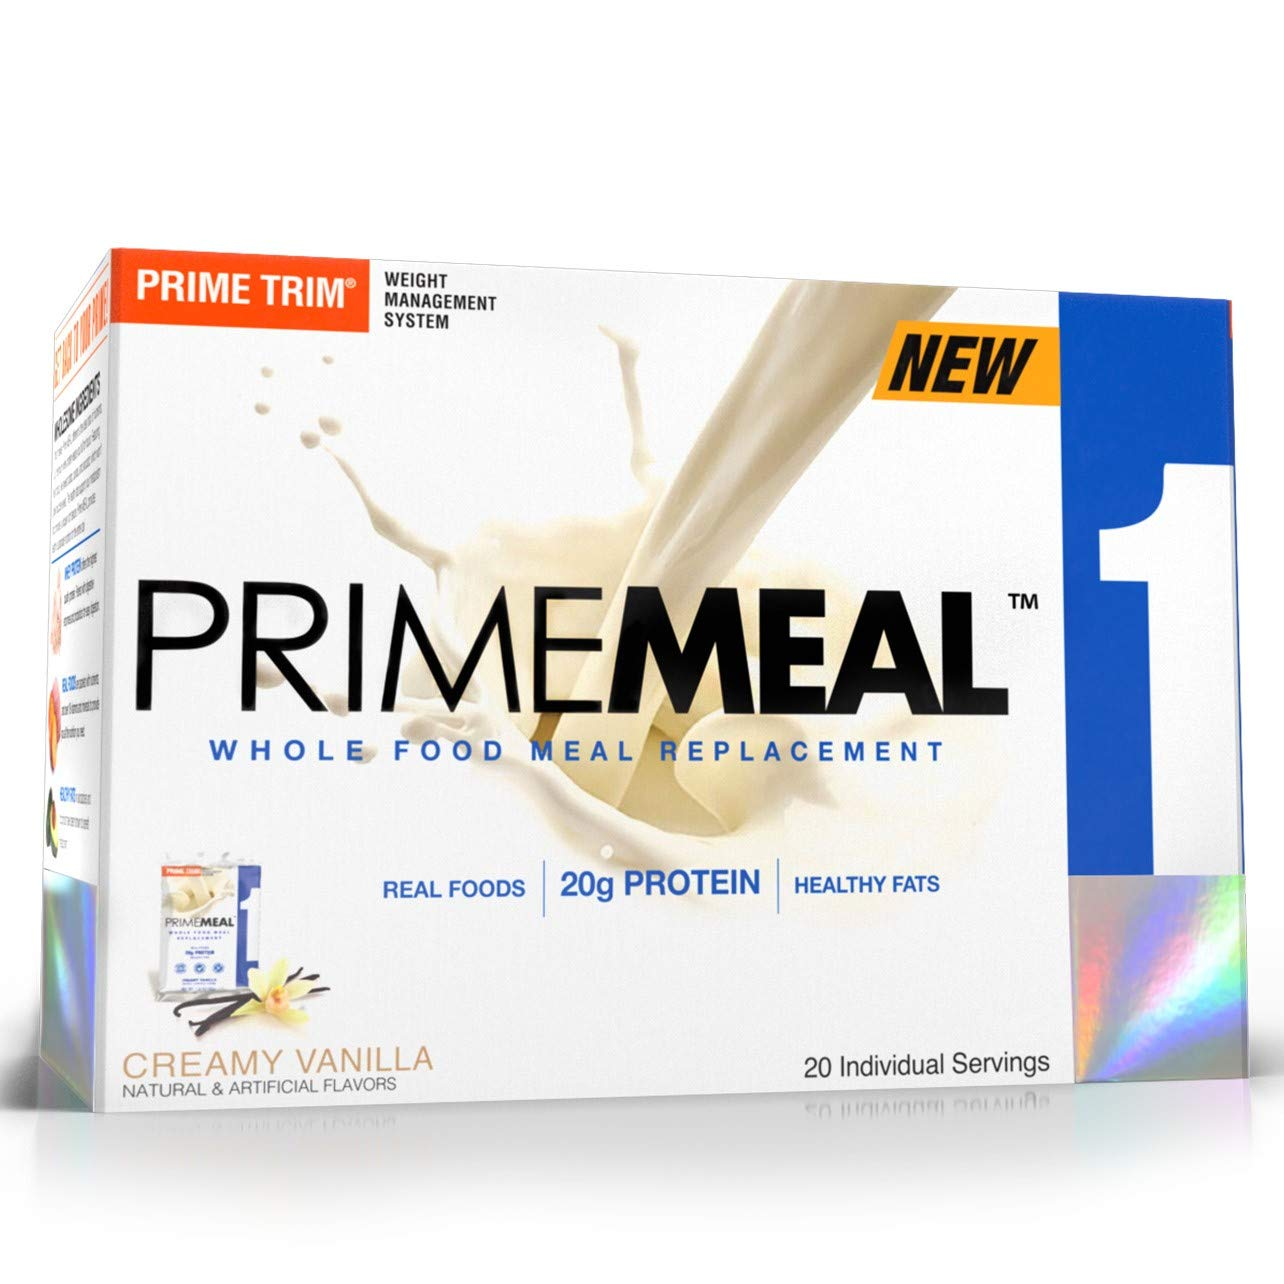 Complete Nutrition Prime Meal, Creamy Vanilla, Meal Replacement, Whey Protein Powder, Weight Management, 20 Individual Packets